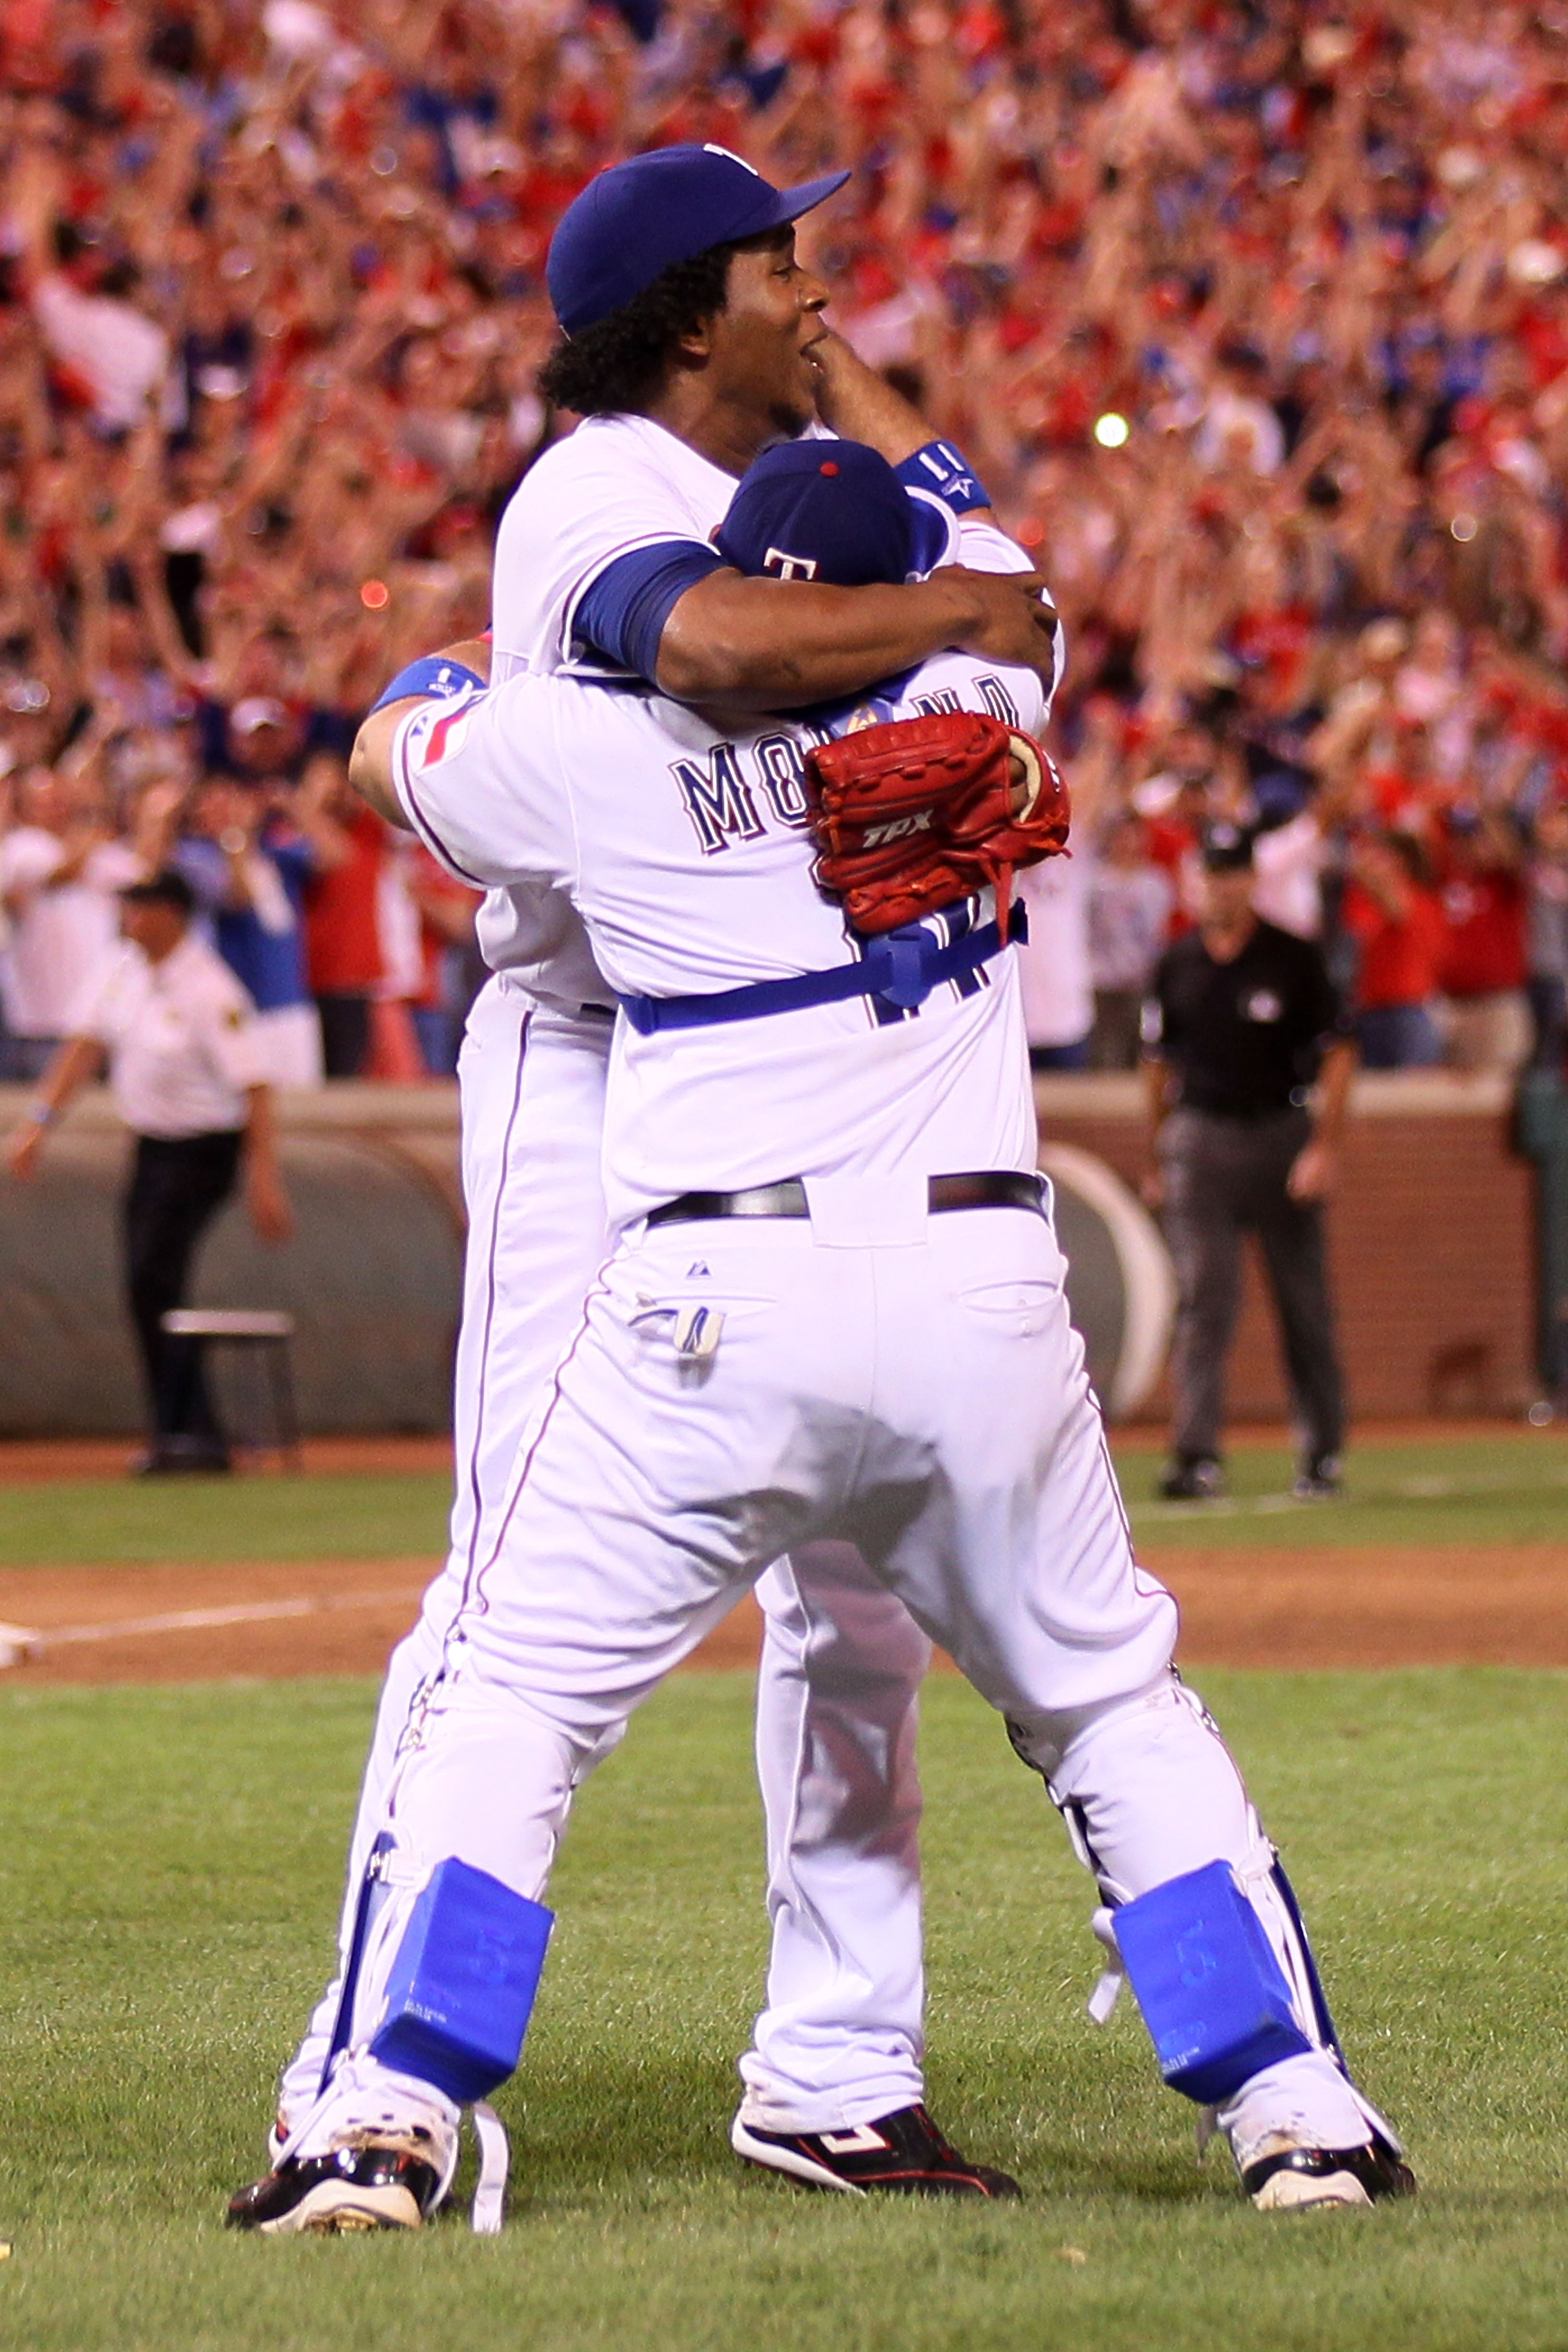 ARLINGTON, TX - OCTOBER 22:  Bengie Molina #11 and Neftali Feliz #30 of the Texas Rangers celebrate after defeating the New York Yankees 6-1 in Game Six of the ALCS during the 2010 MLB Playoffs at Rangers Ballpark in Arlington on October 22, 2010 in Arlin